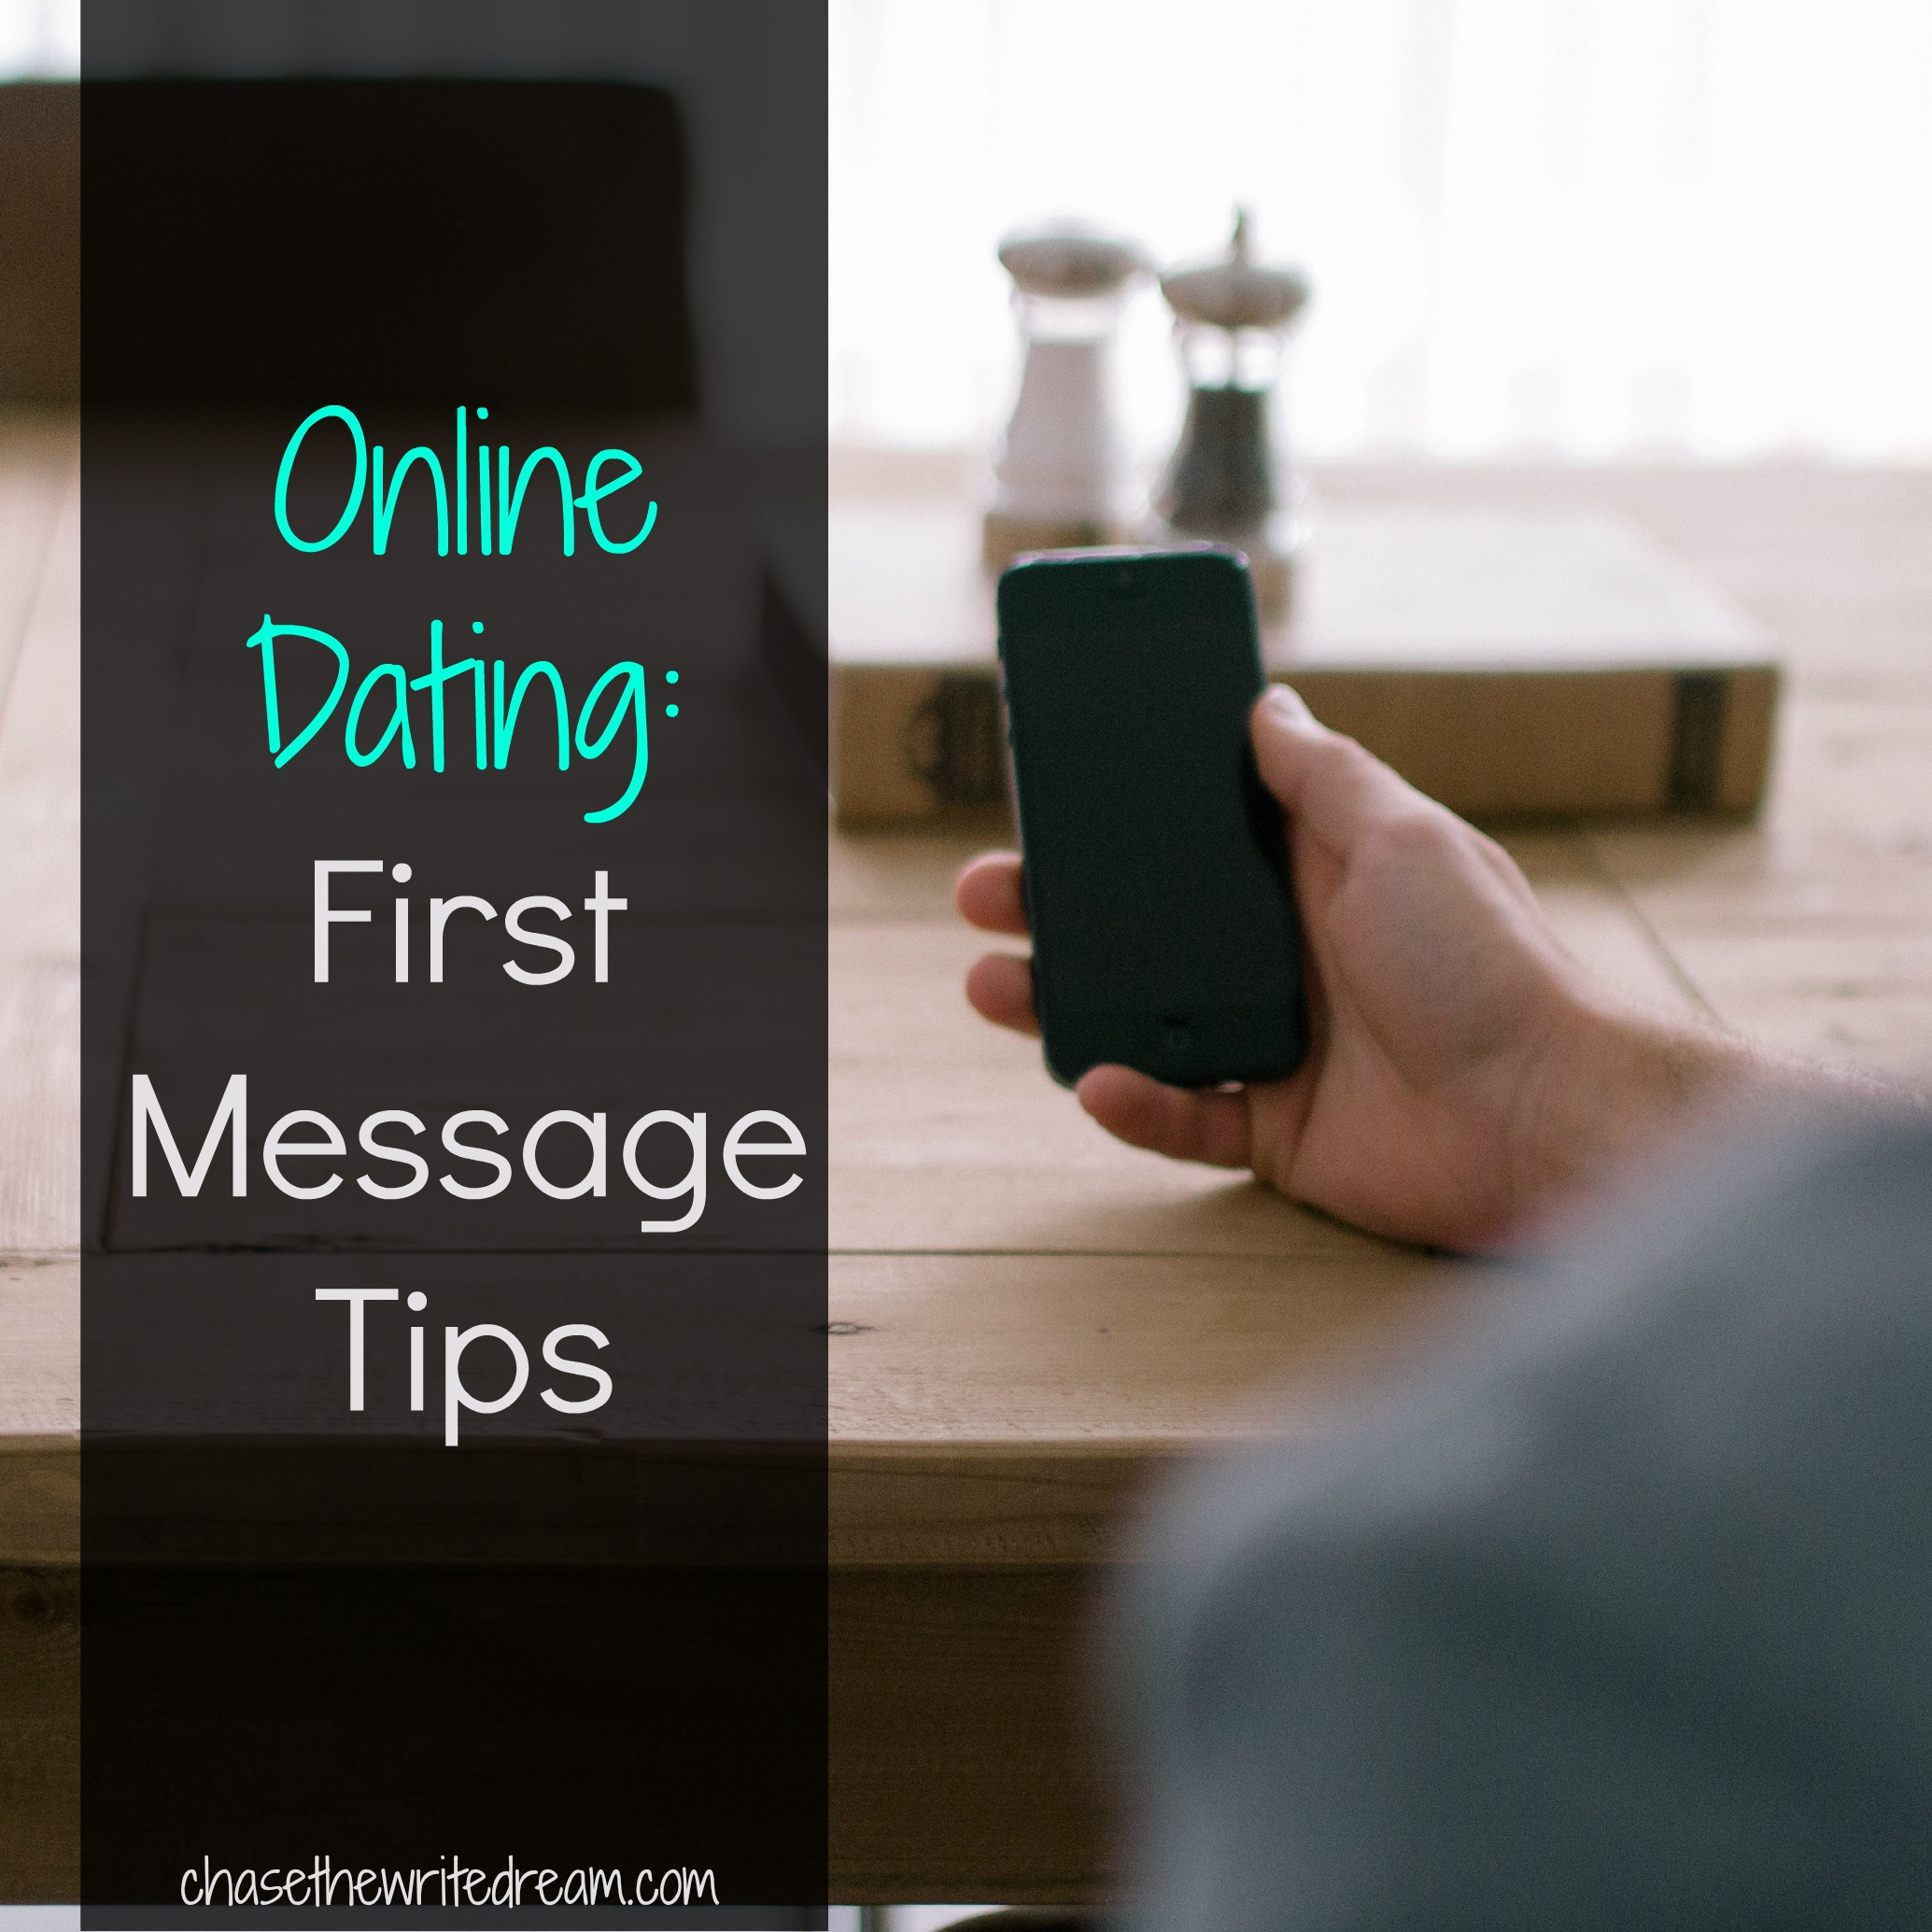 Online dating first message tips for couples